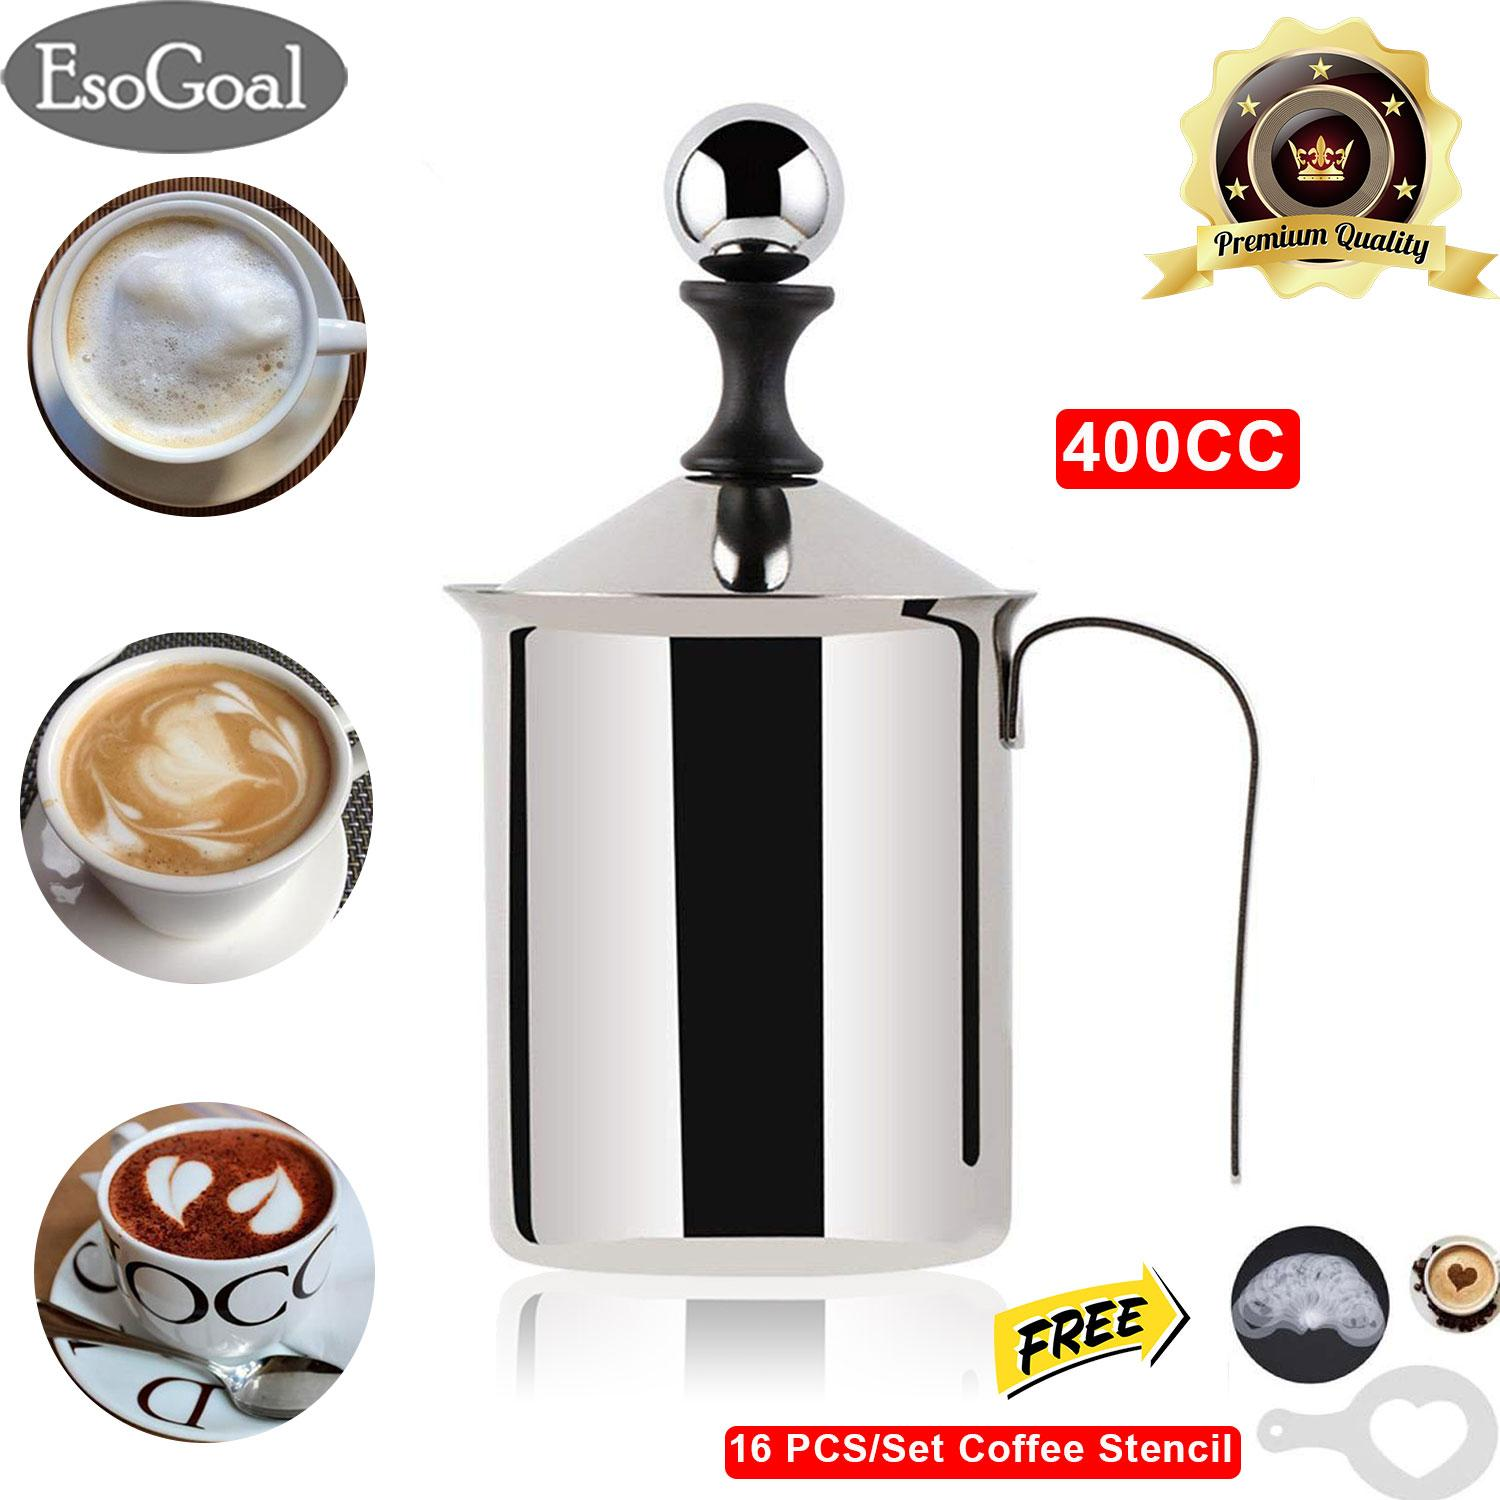 Esogoal Manual Milk Frother Foamer Stainless Steel Cappuccino Coffee Creamer Foam Pitcher With Handle And Lid Double Mesh 400cc/800cc By Esogoal